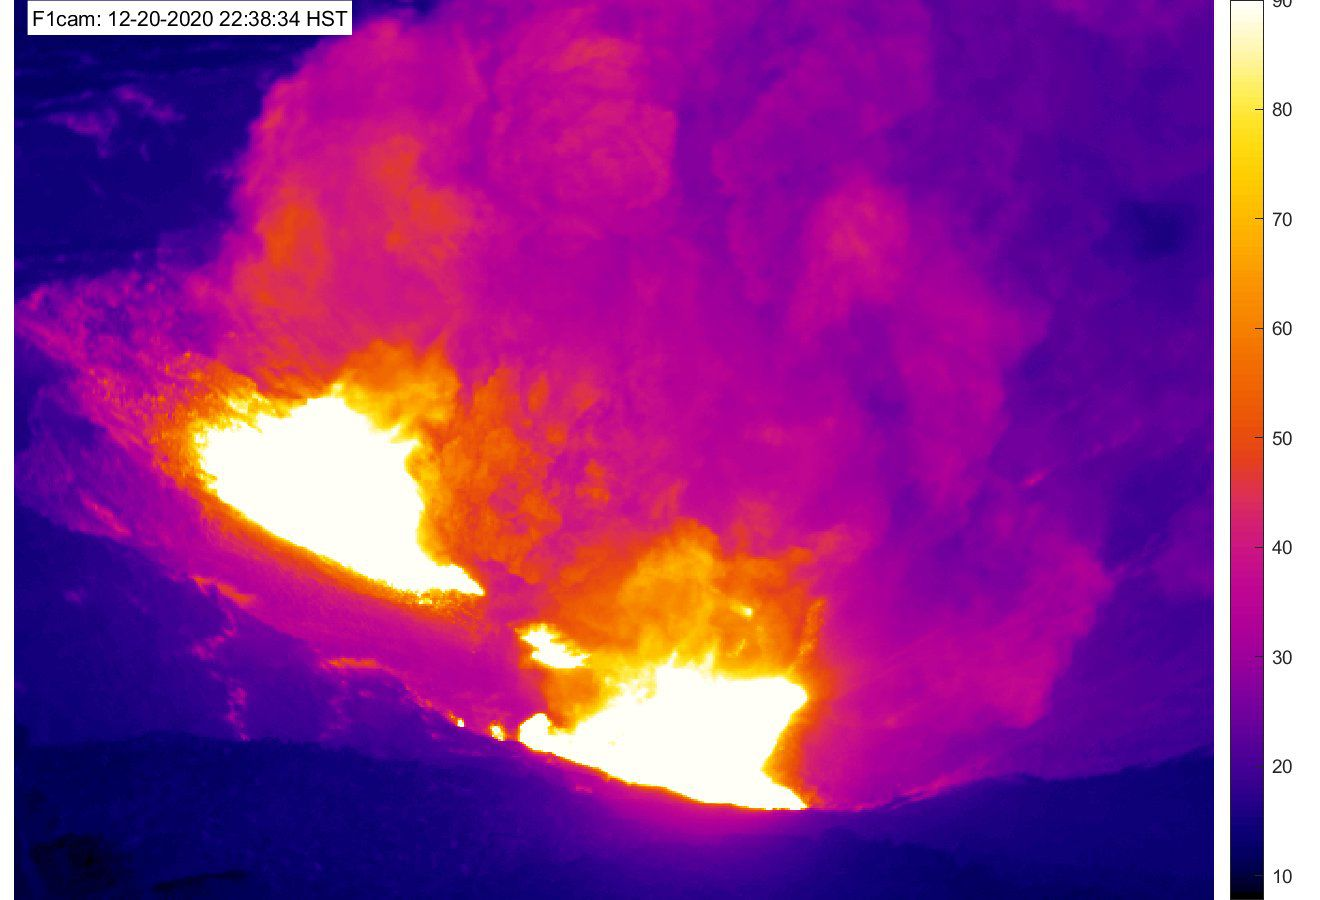 Kilauea - cratère Halema'uma'u -  éruption ce 20.12.2020   22h38 HST - webcam therm.USGS - HVO